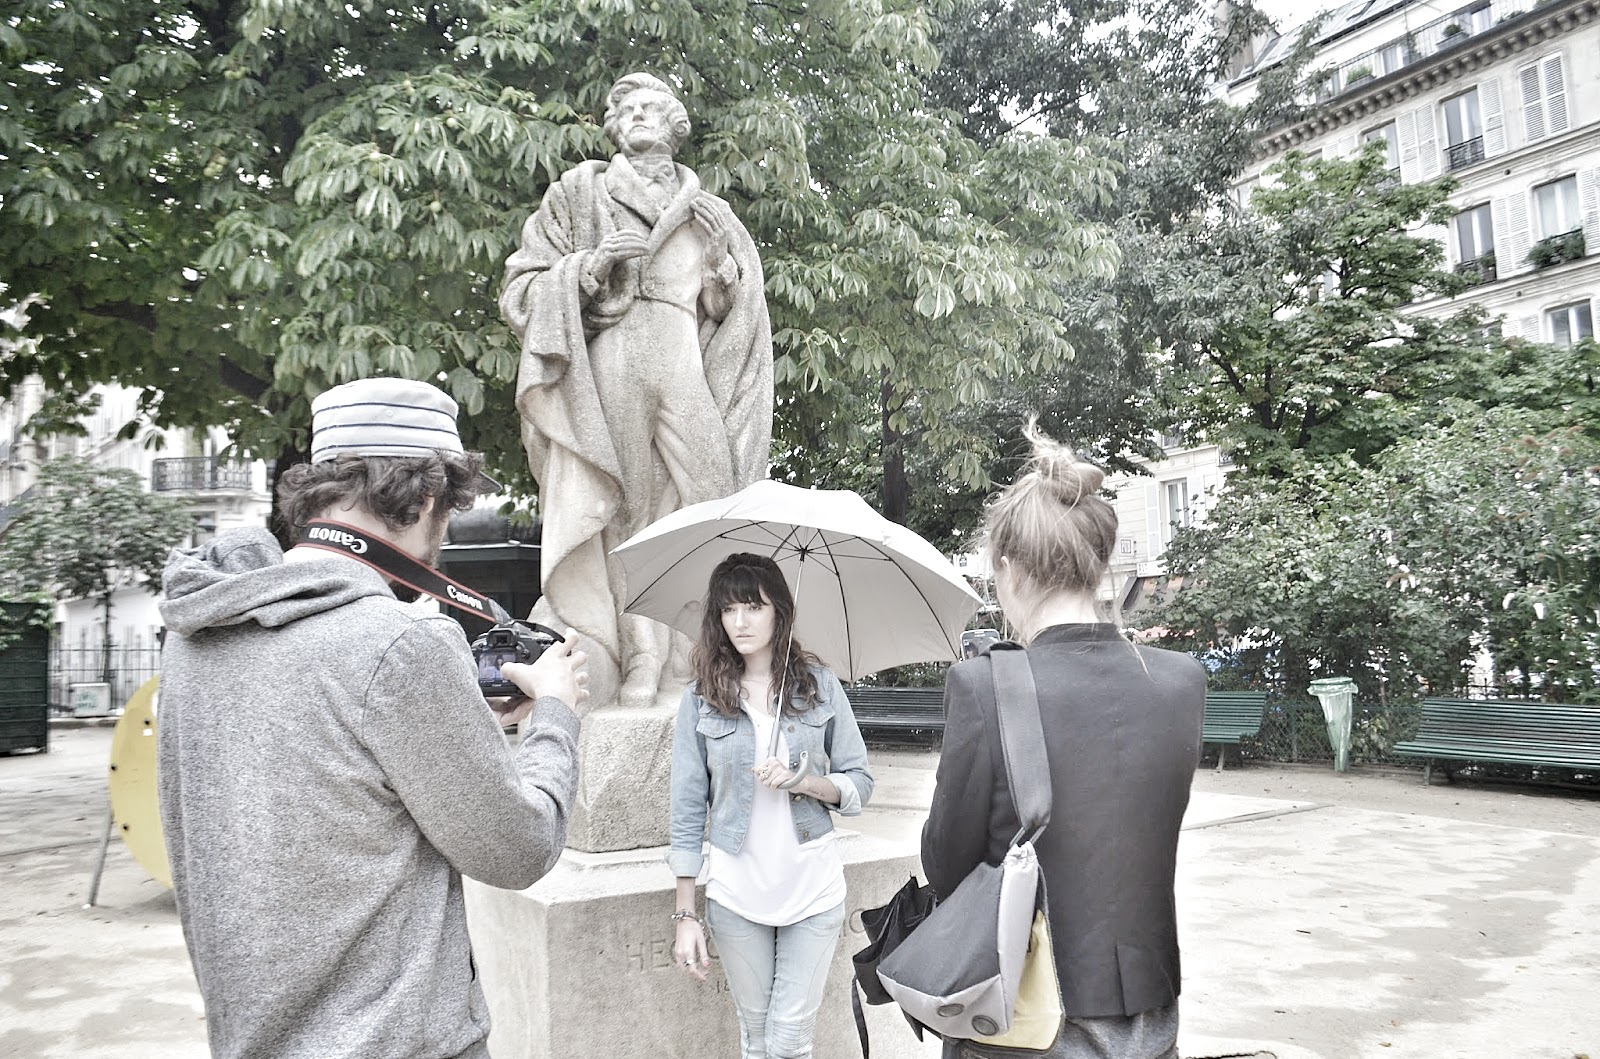 Tournage backstage Findzie - Copyright Agathe LaTuque 2014.